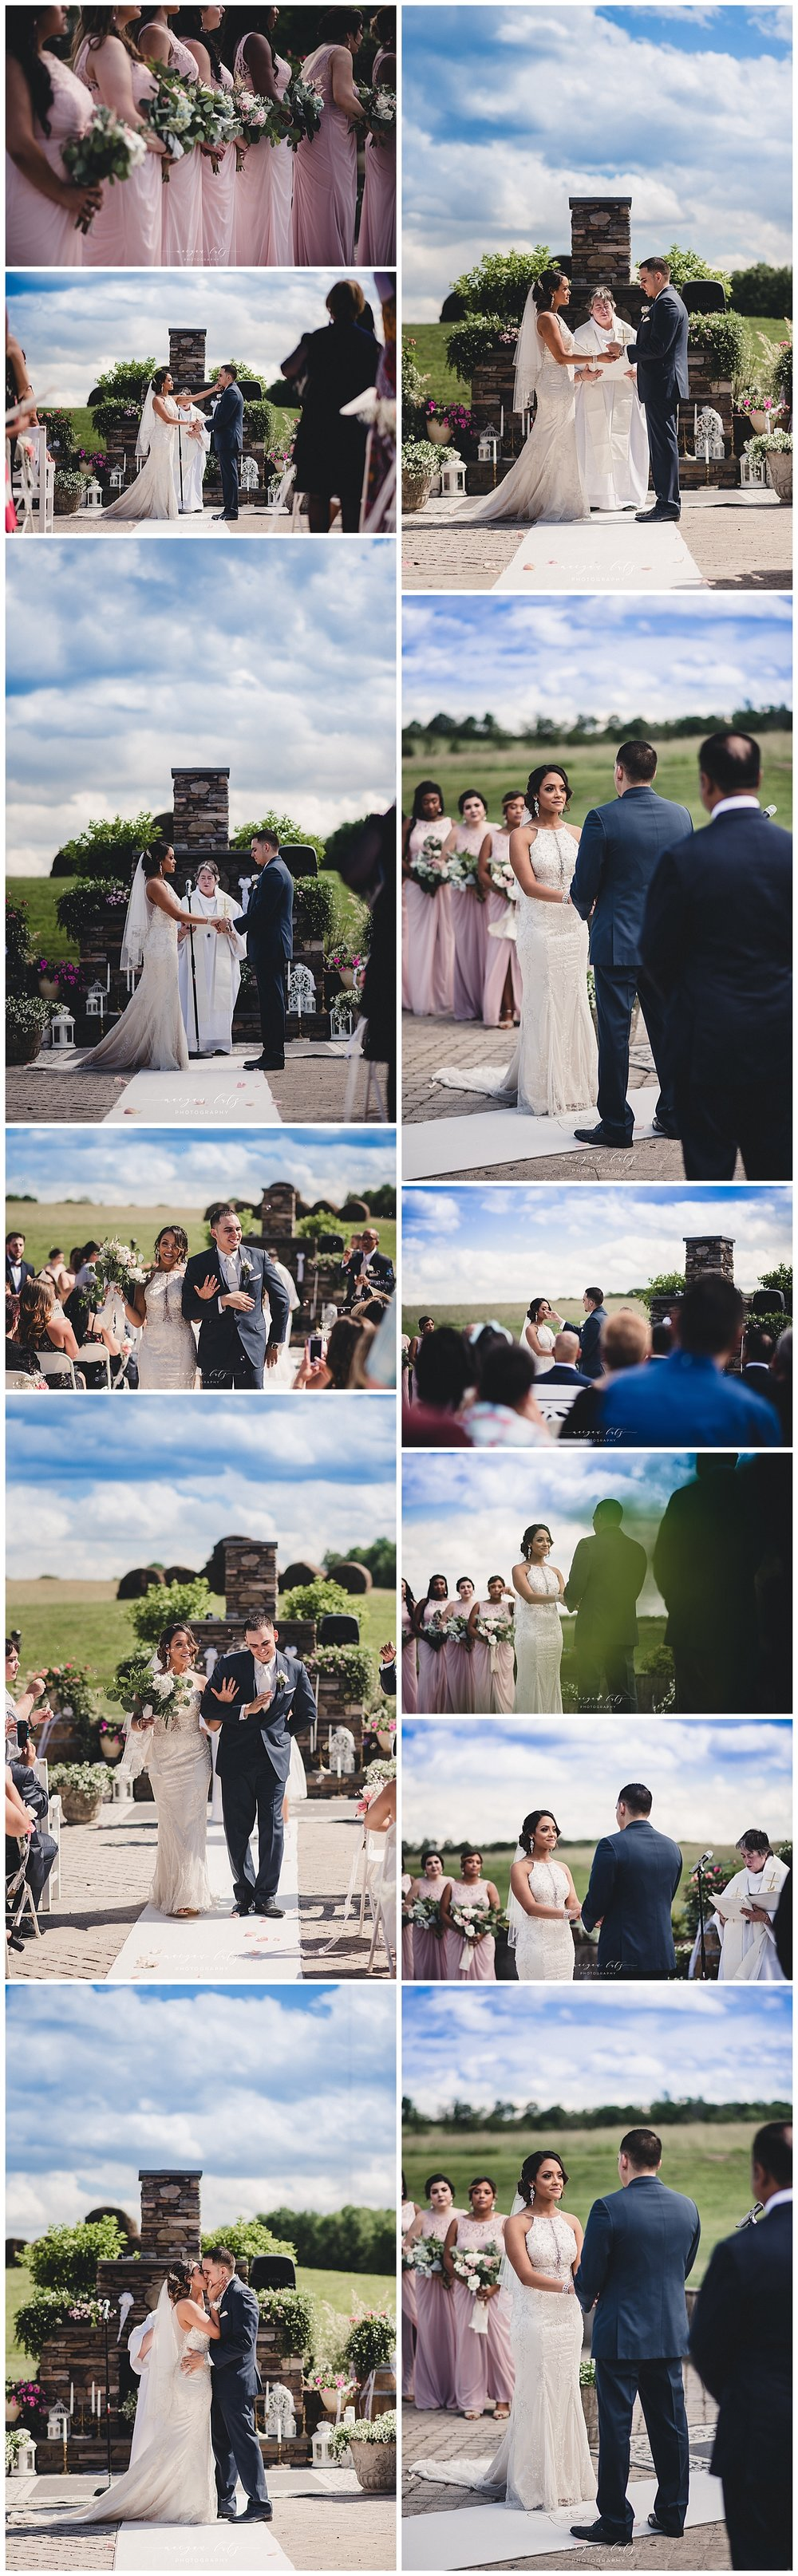 Outdoor ceremony by Williamsport Photographer at Wedding at the Barn at Glistening Pond, Falls PA